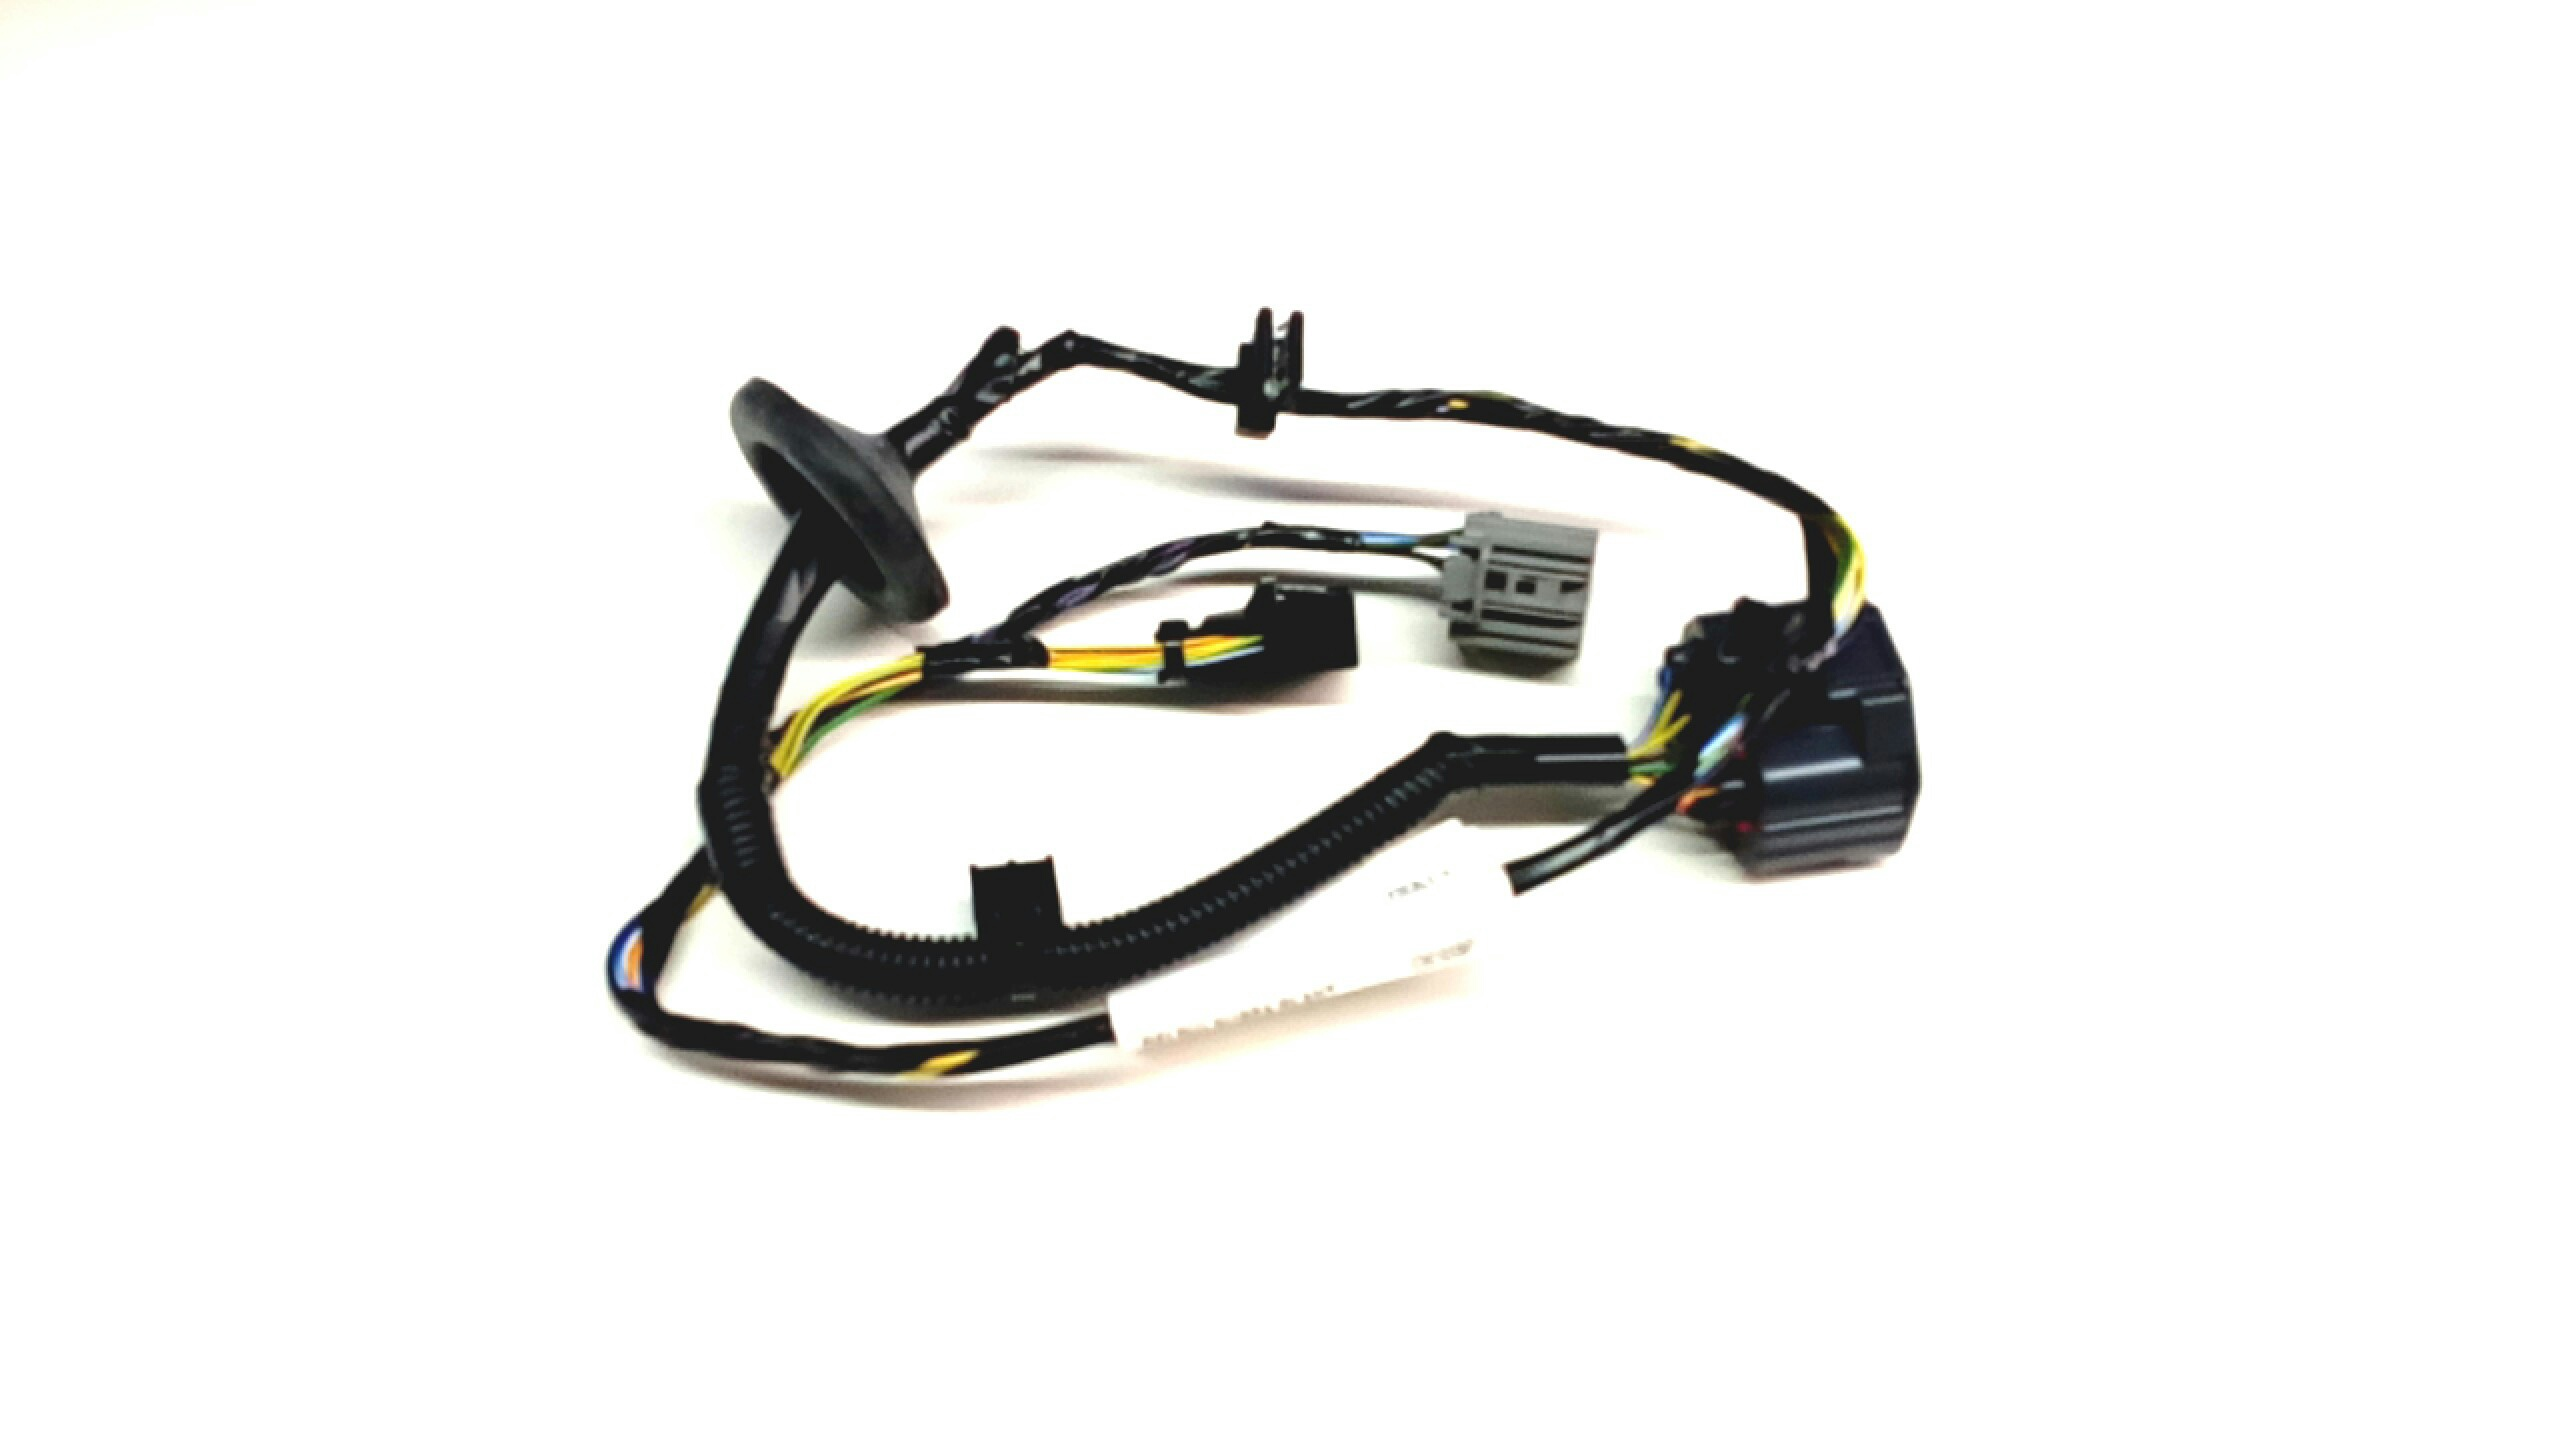 Volvo Xc60 Parking Aid System Wiring Harness  Rear   Ch 500157-